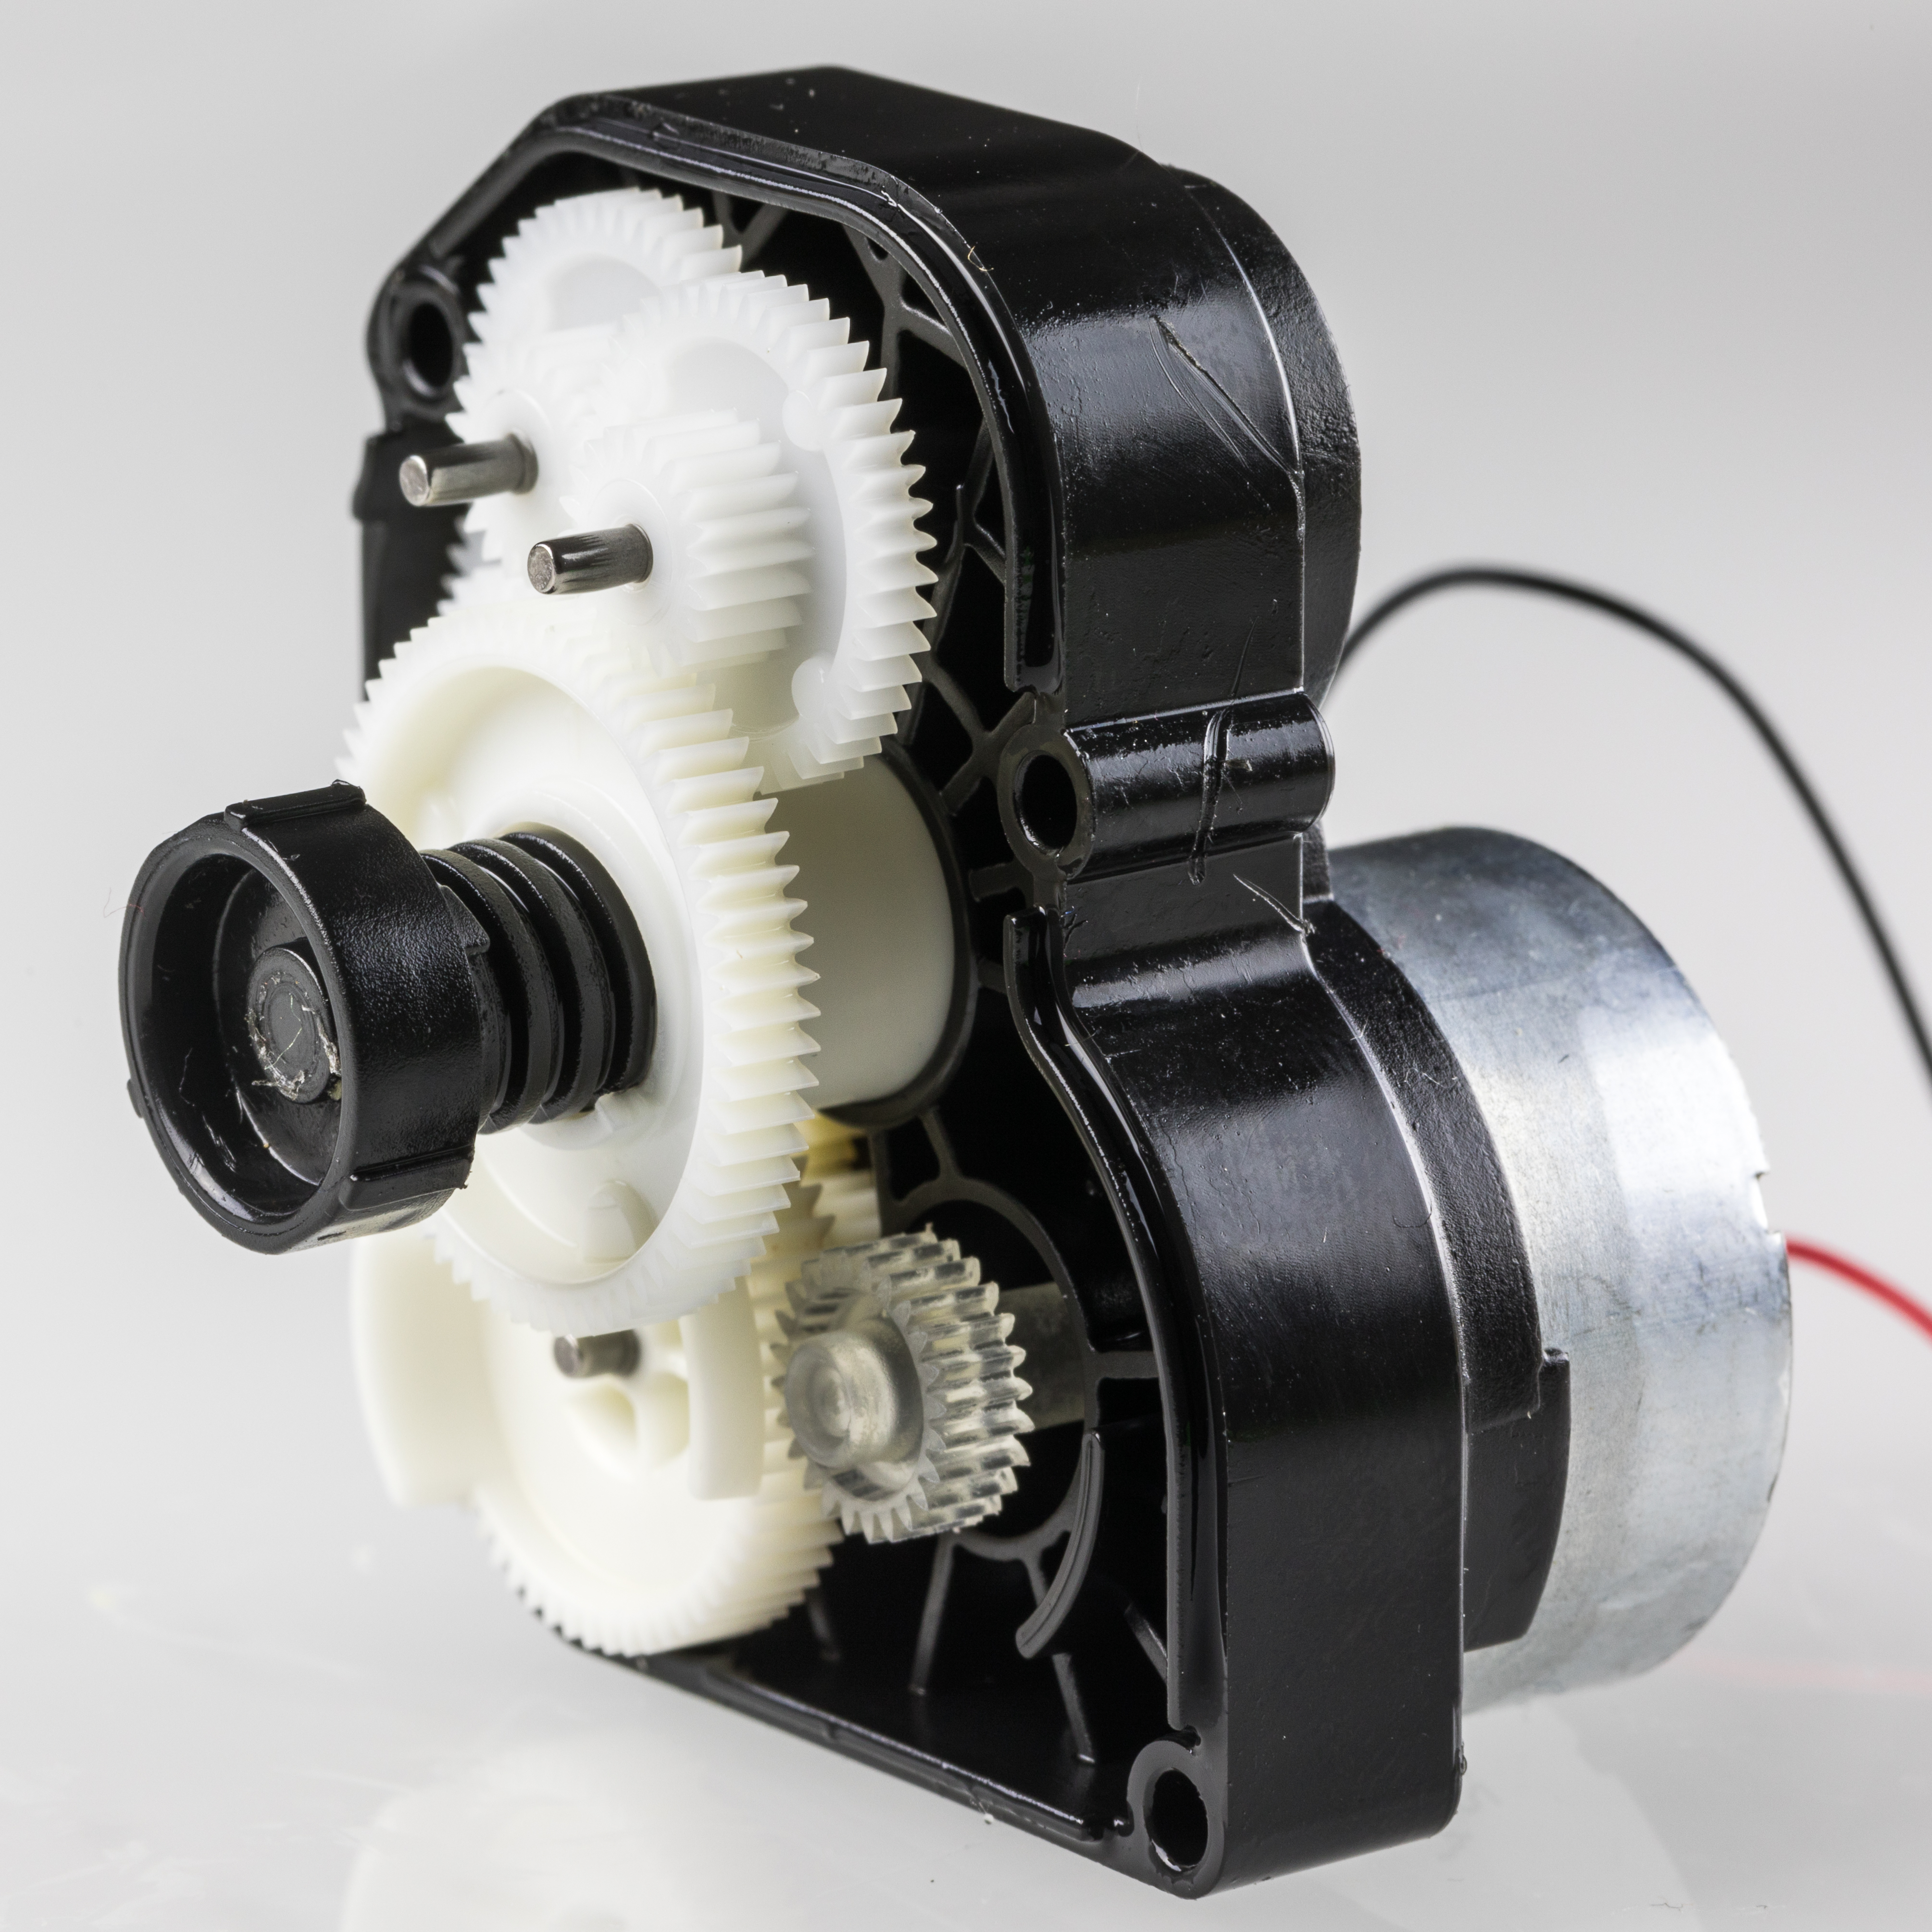 file eurotronic thermy motor and gear 1 2 jpg wikimedia commons rh commons wikimedia org